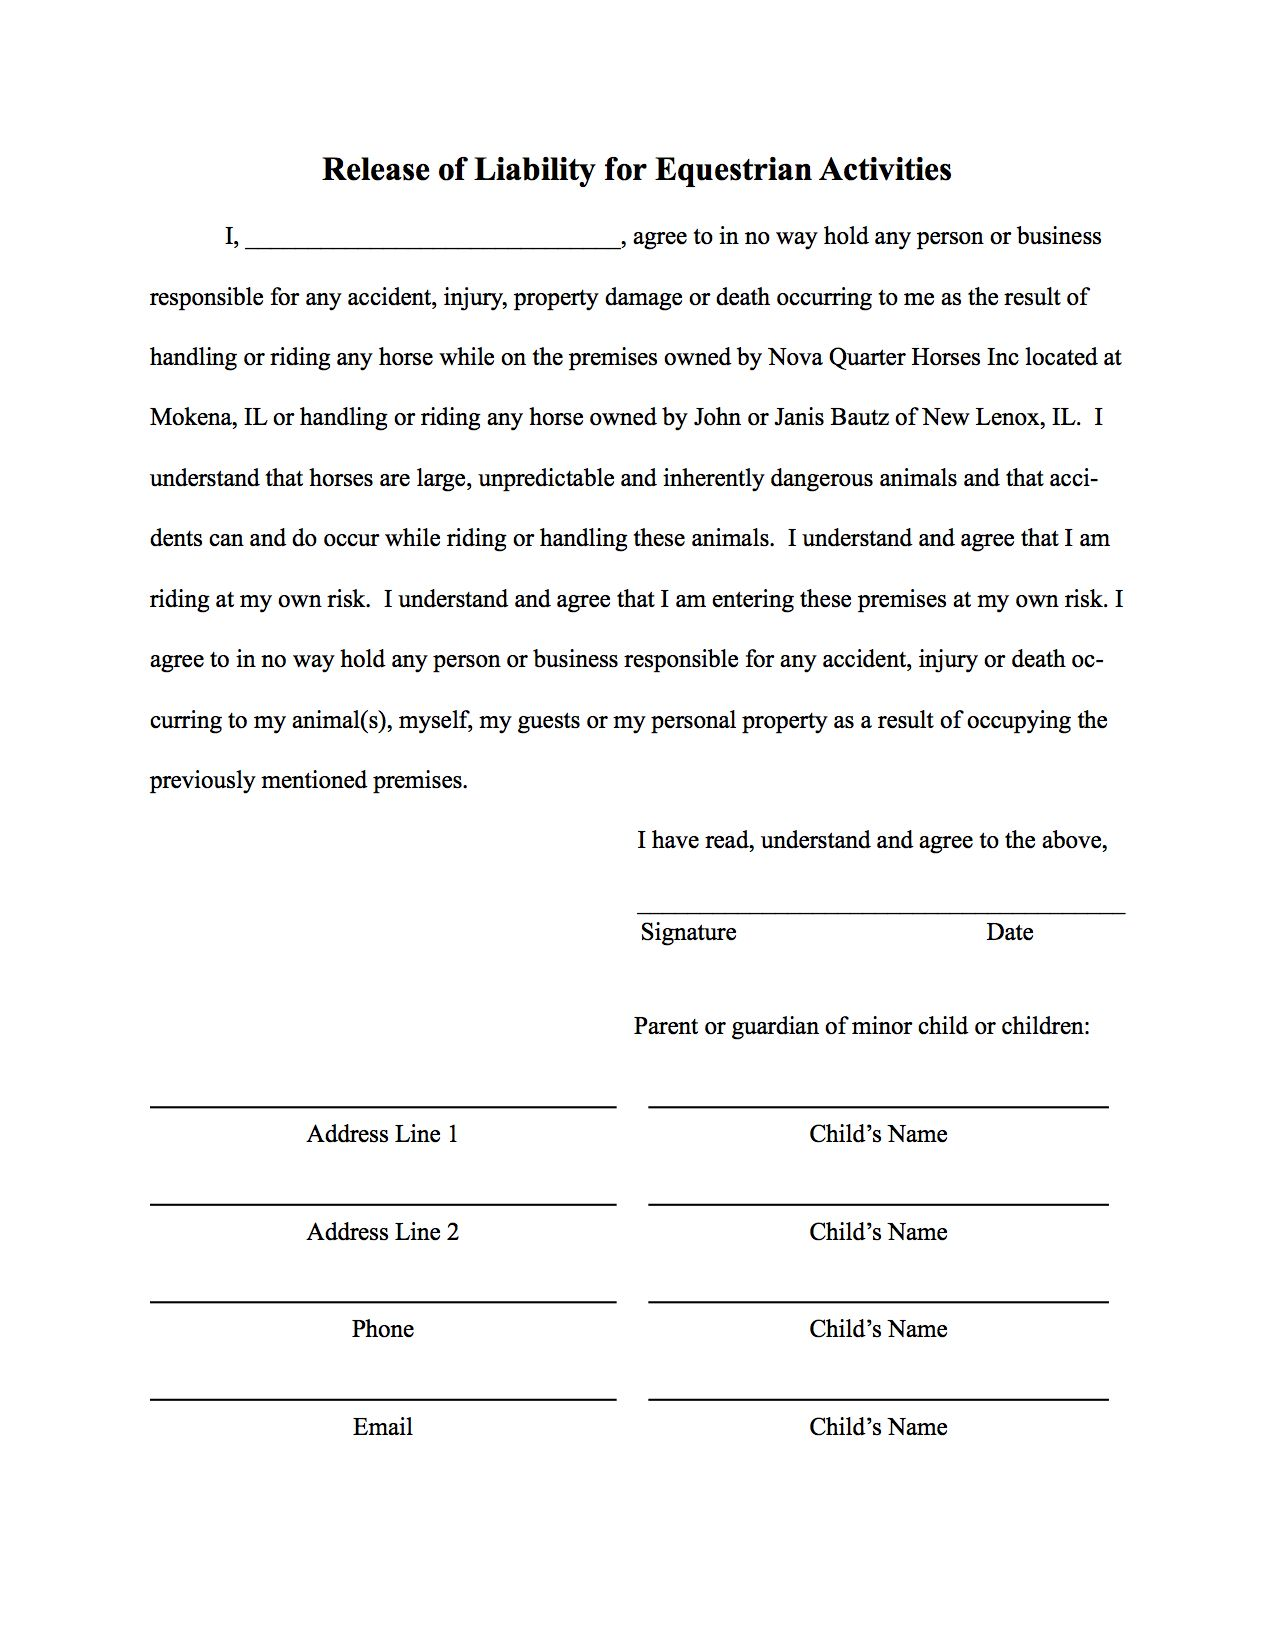 Printable Sample Liability Form Form | Legal forms ... on notary statement letter sample, notary to notarize letter, notary letter format, samples of notarized proof of income letters, notary examples of letters, notary document format, notary notarized letter,